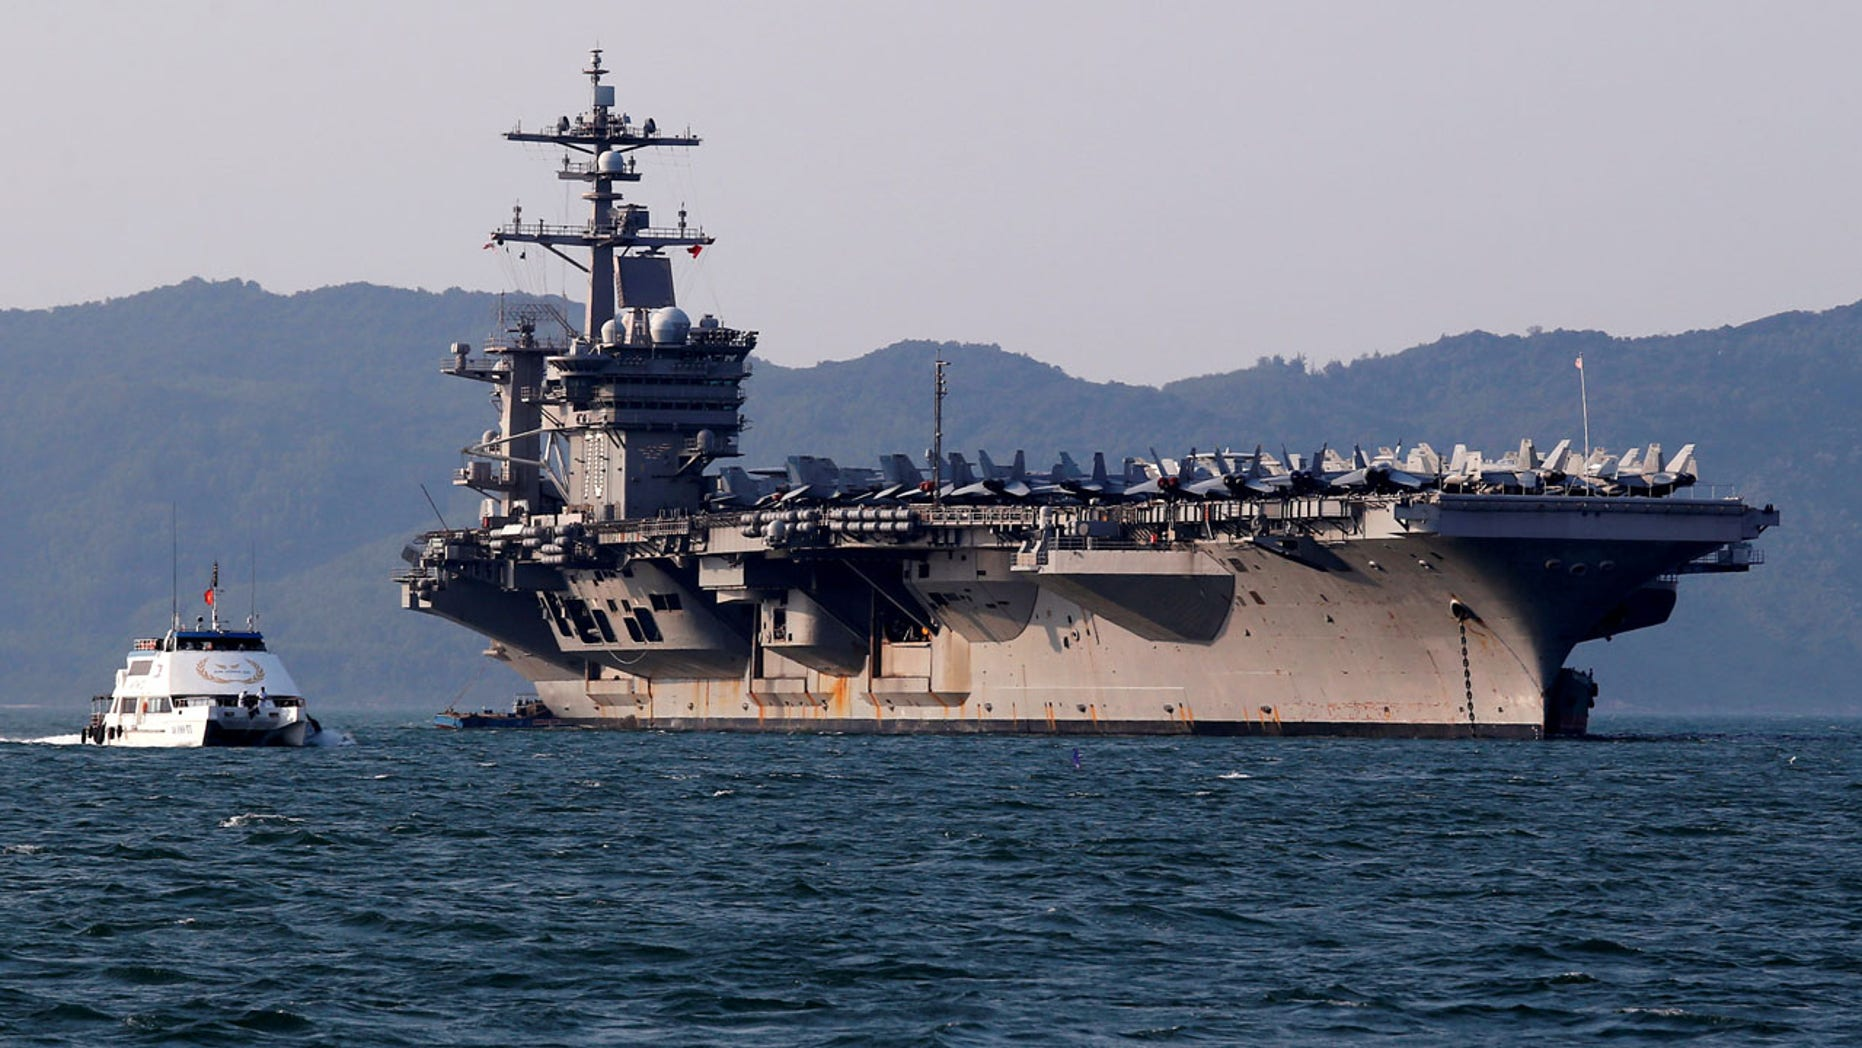 March 5: U.S. Navy aircraft carrier, USS Carl Vinson, docks at a port in Danang, Vietnam